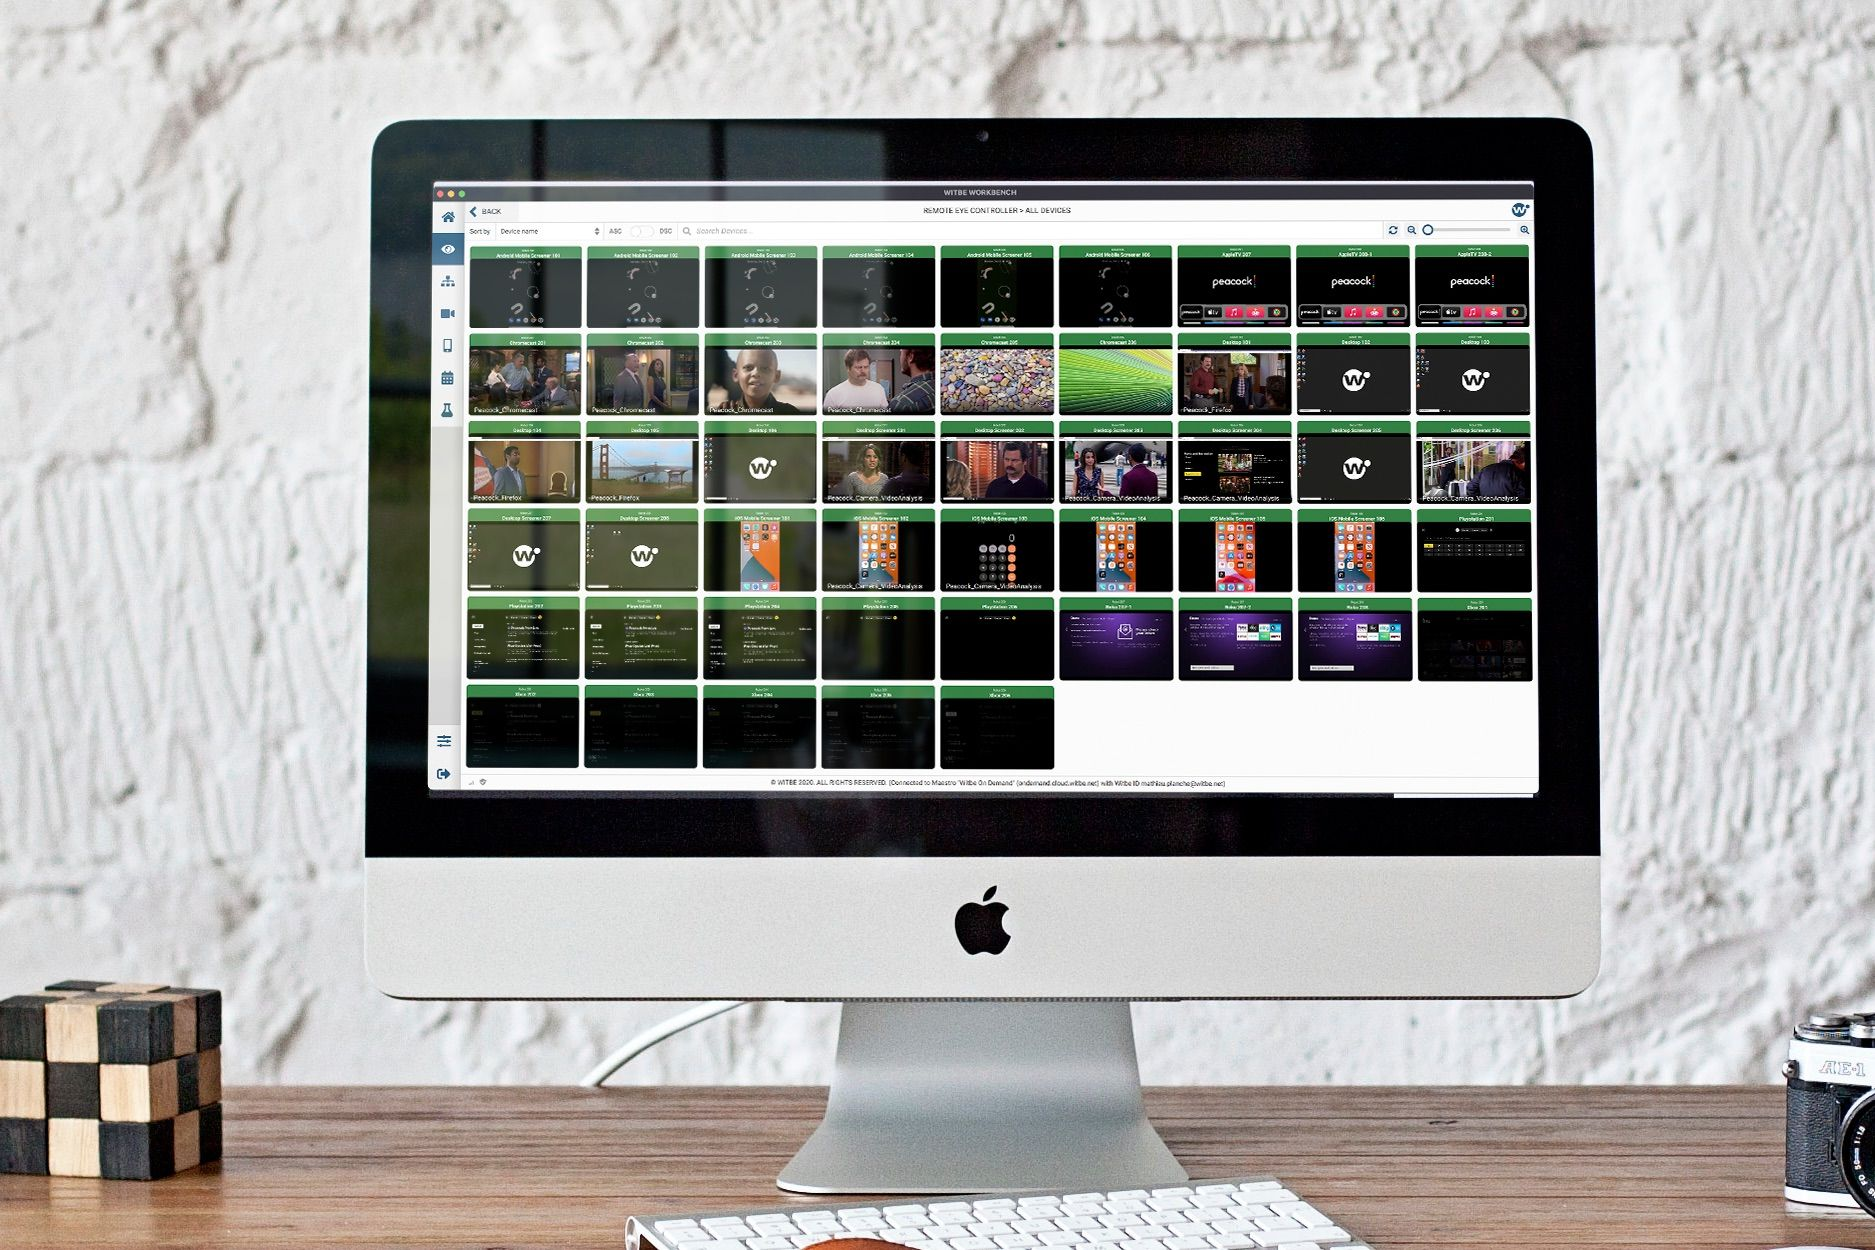 Witbe announces the future of OTT monitoring: Witbe Cloud OnDemand